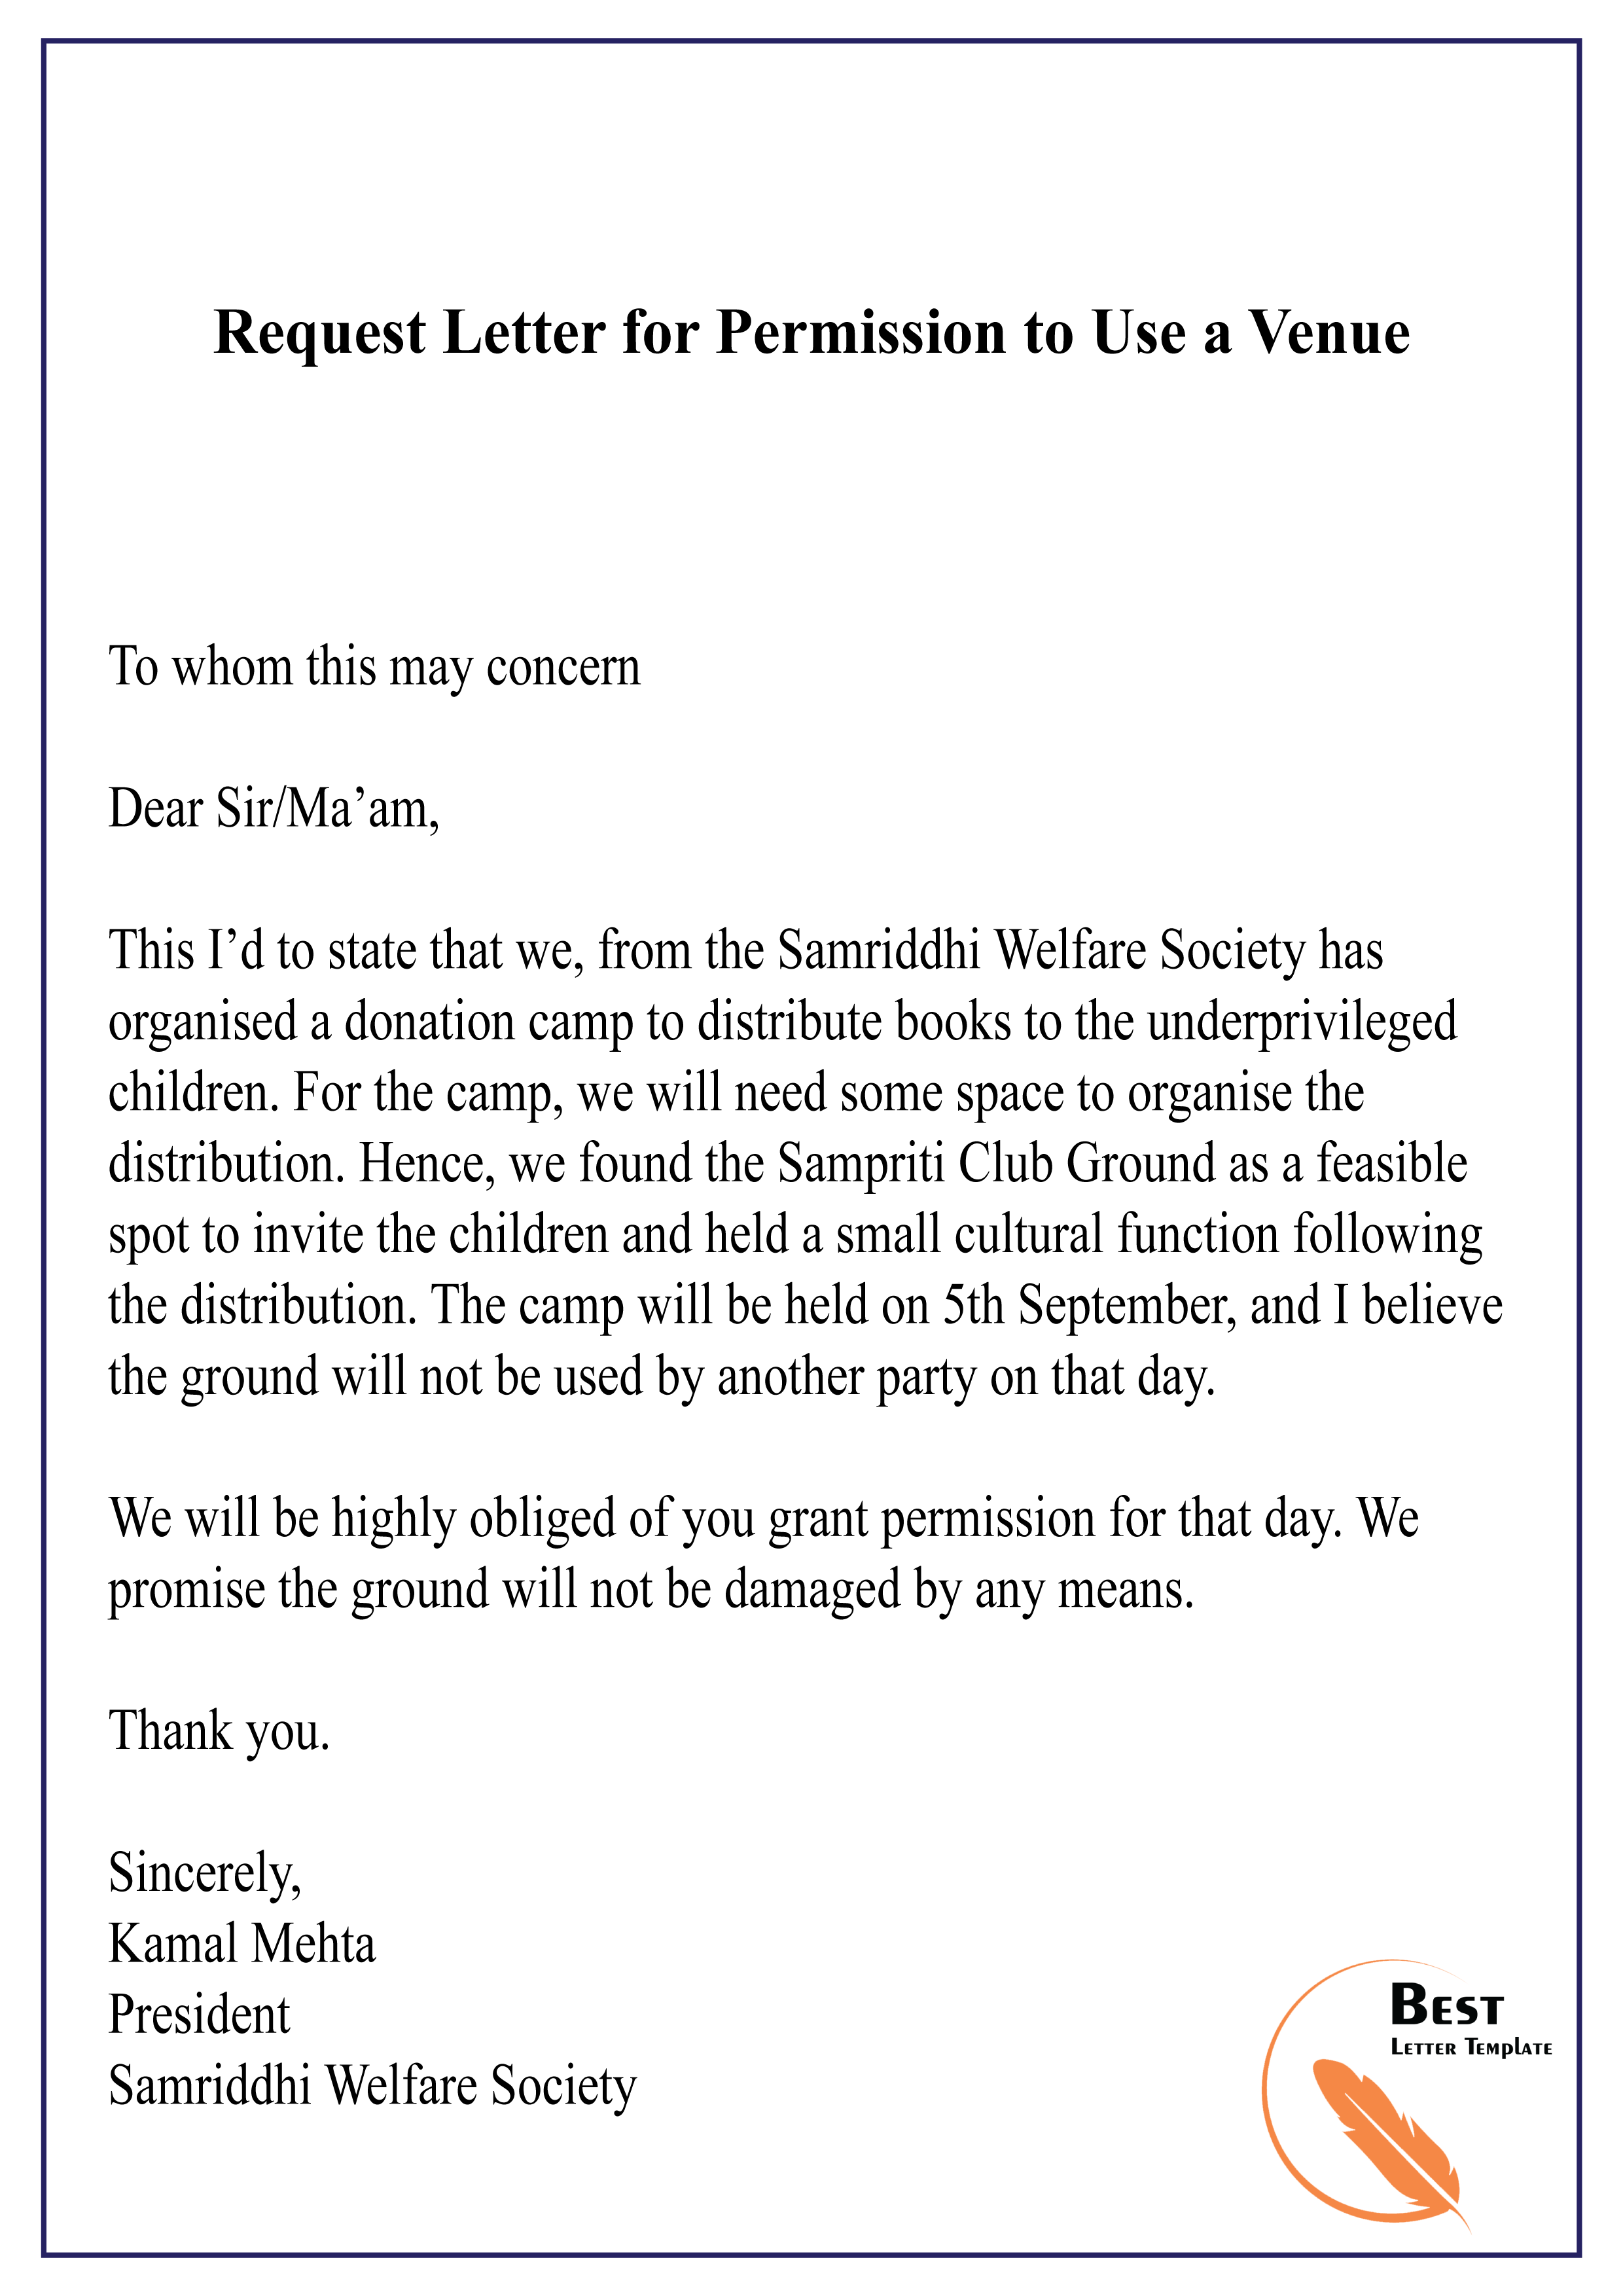 Sample Request Letter For Permission To Use A Venue idea gallery